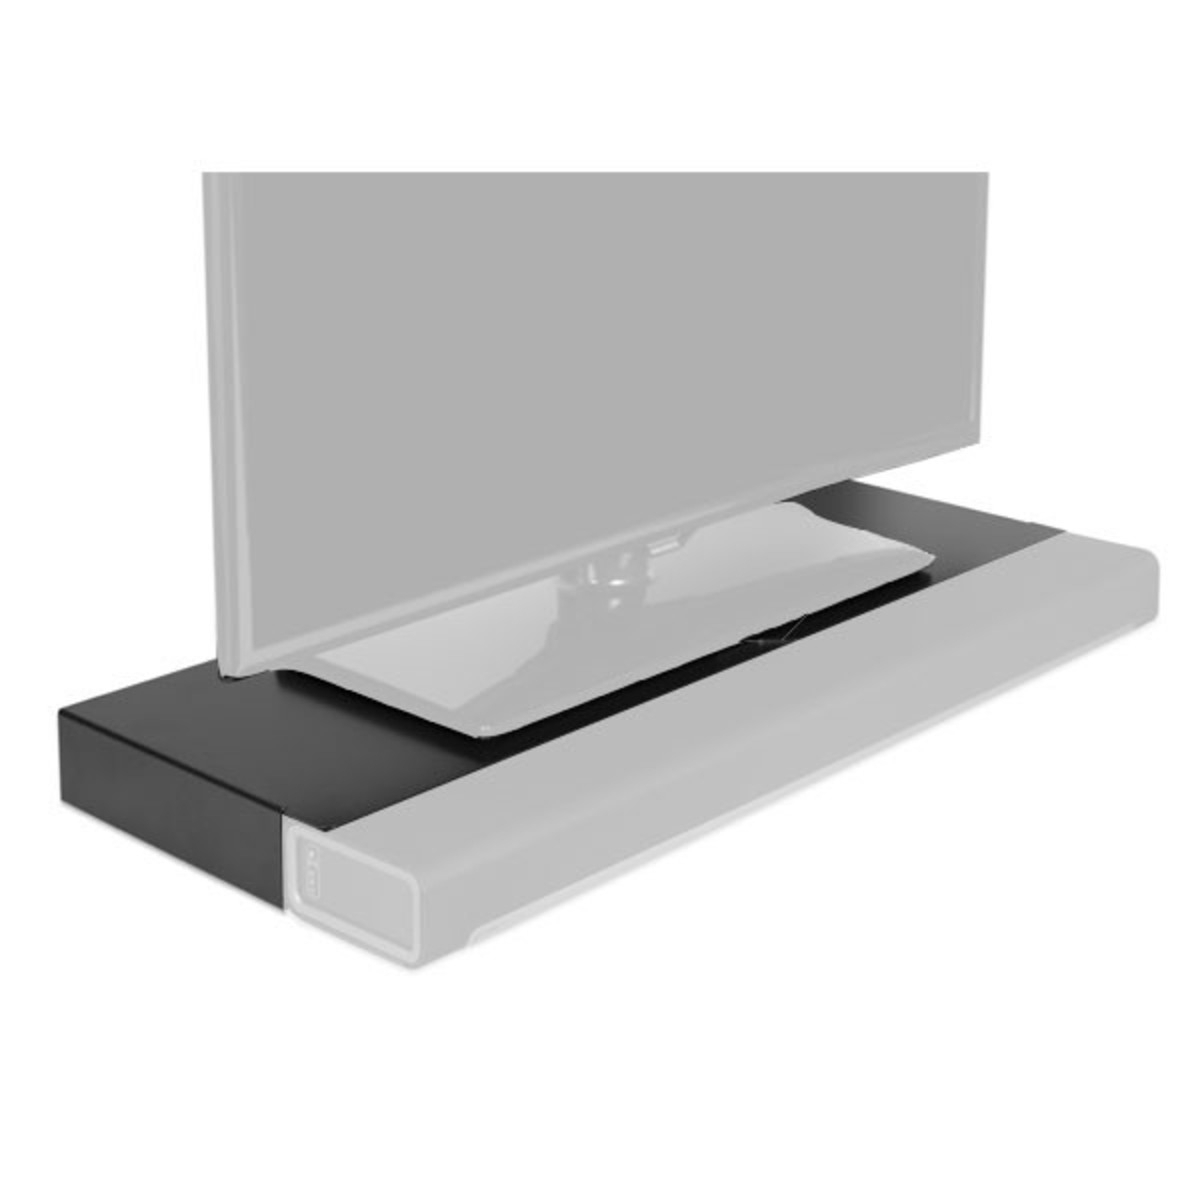 Well Known Single Tv Stands With Flexson Tv Stand For Sonos Playbar, Black (View 19 of 20)